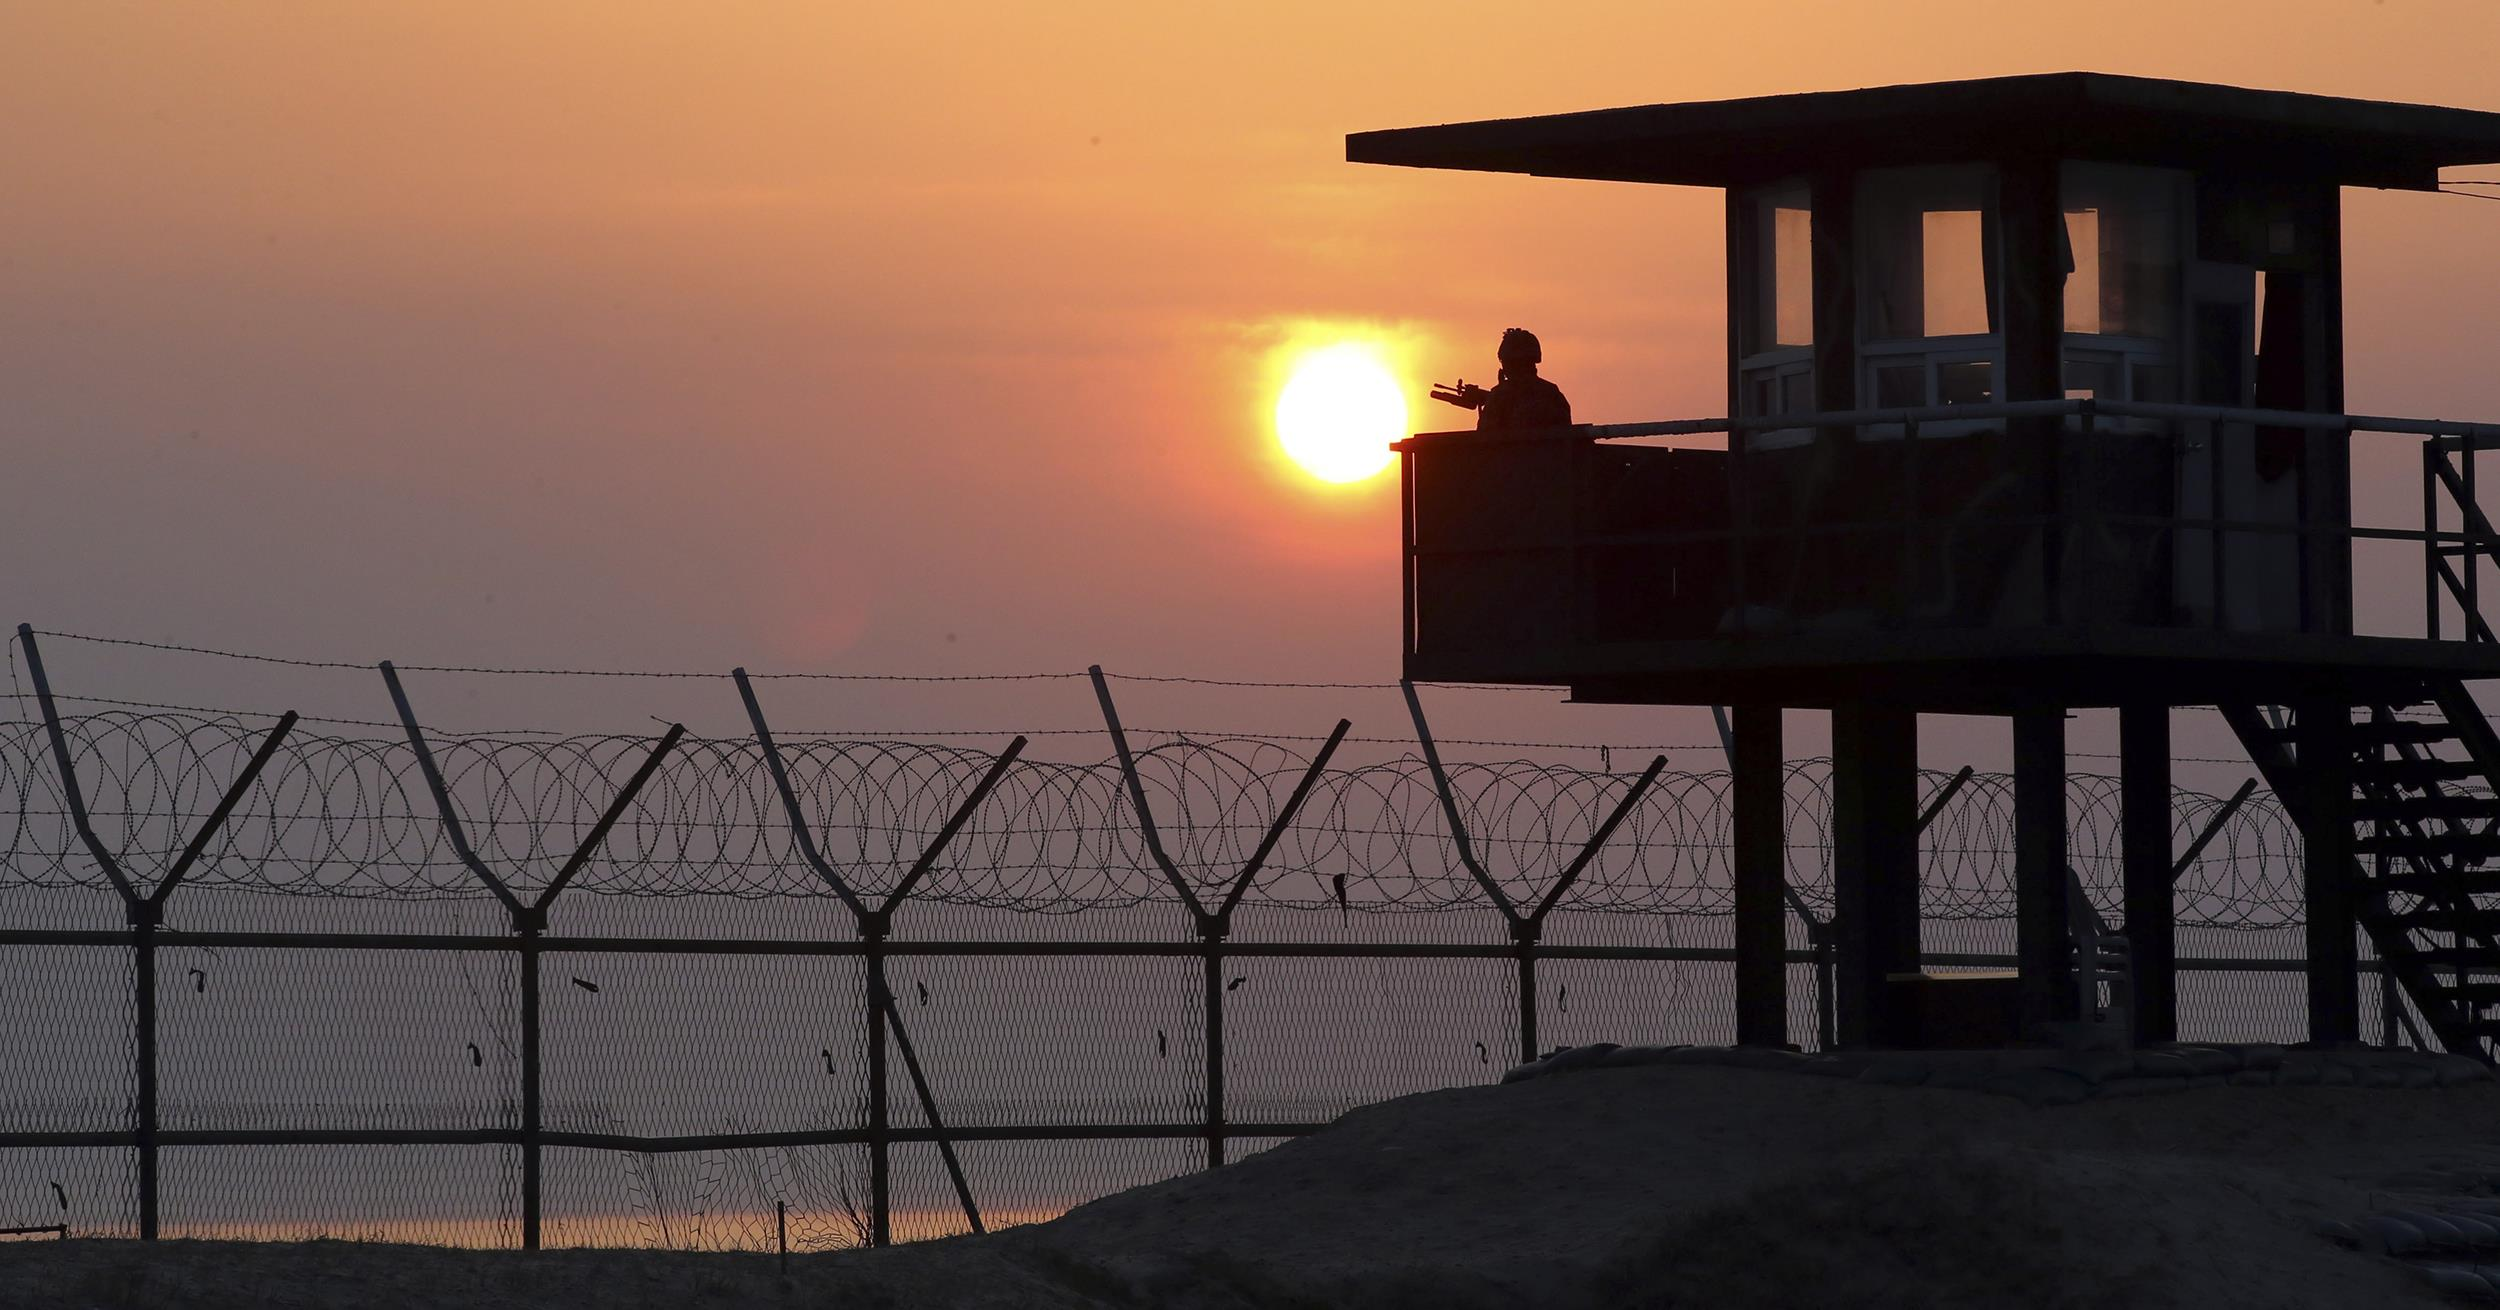 Image: A South Korean soldier guards with his gun at a guard post at sunrise on Baengnyeong Island, South Korea, near the West Sea border with North Korea on April 2